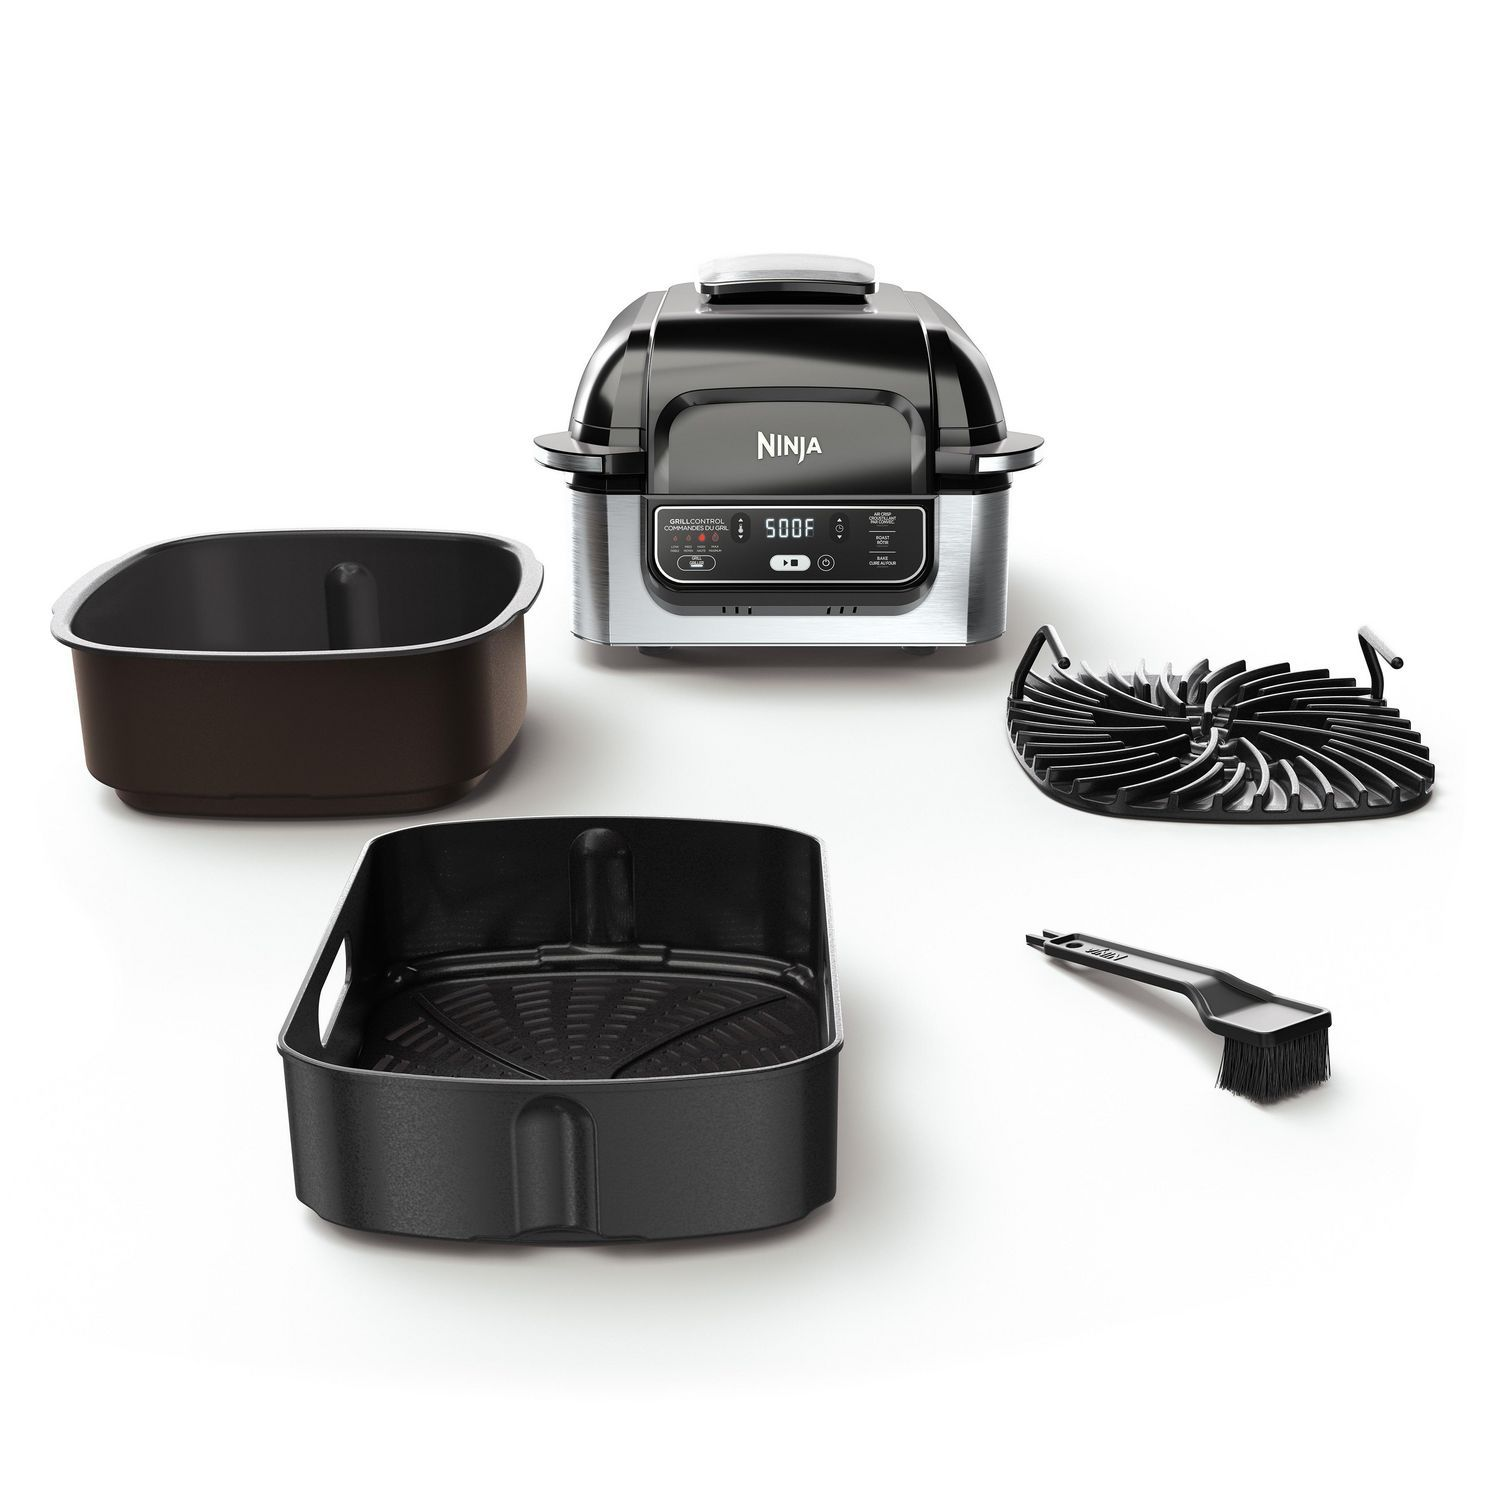 Ninja Foodi 4 In 1 Indoor Grill With 4 Quart Air Fryer Roast